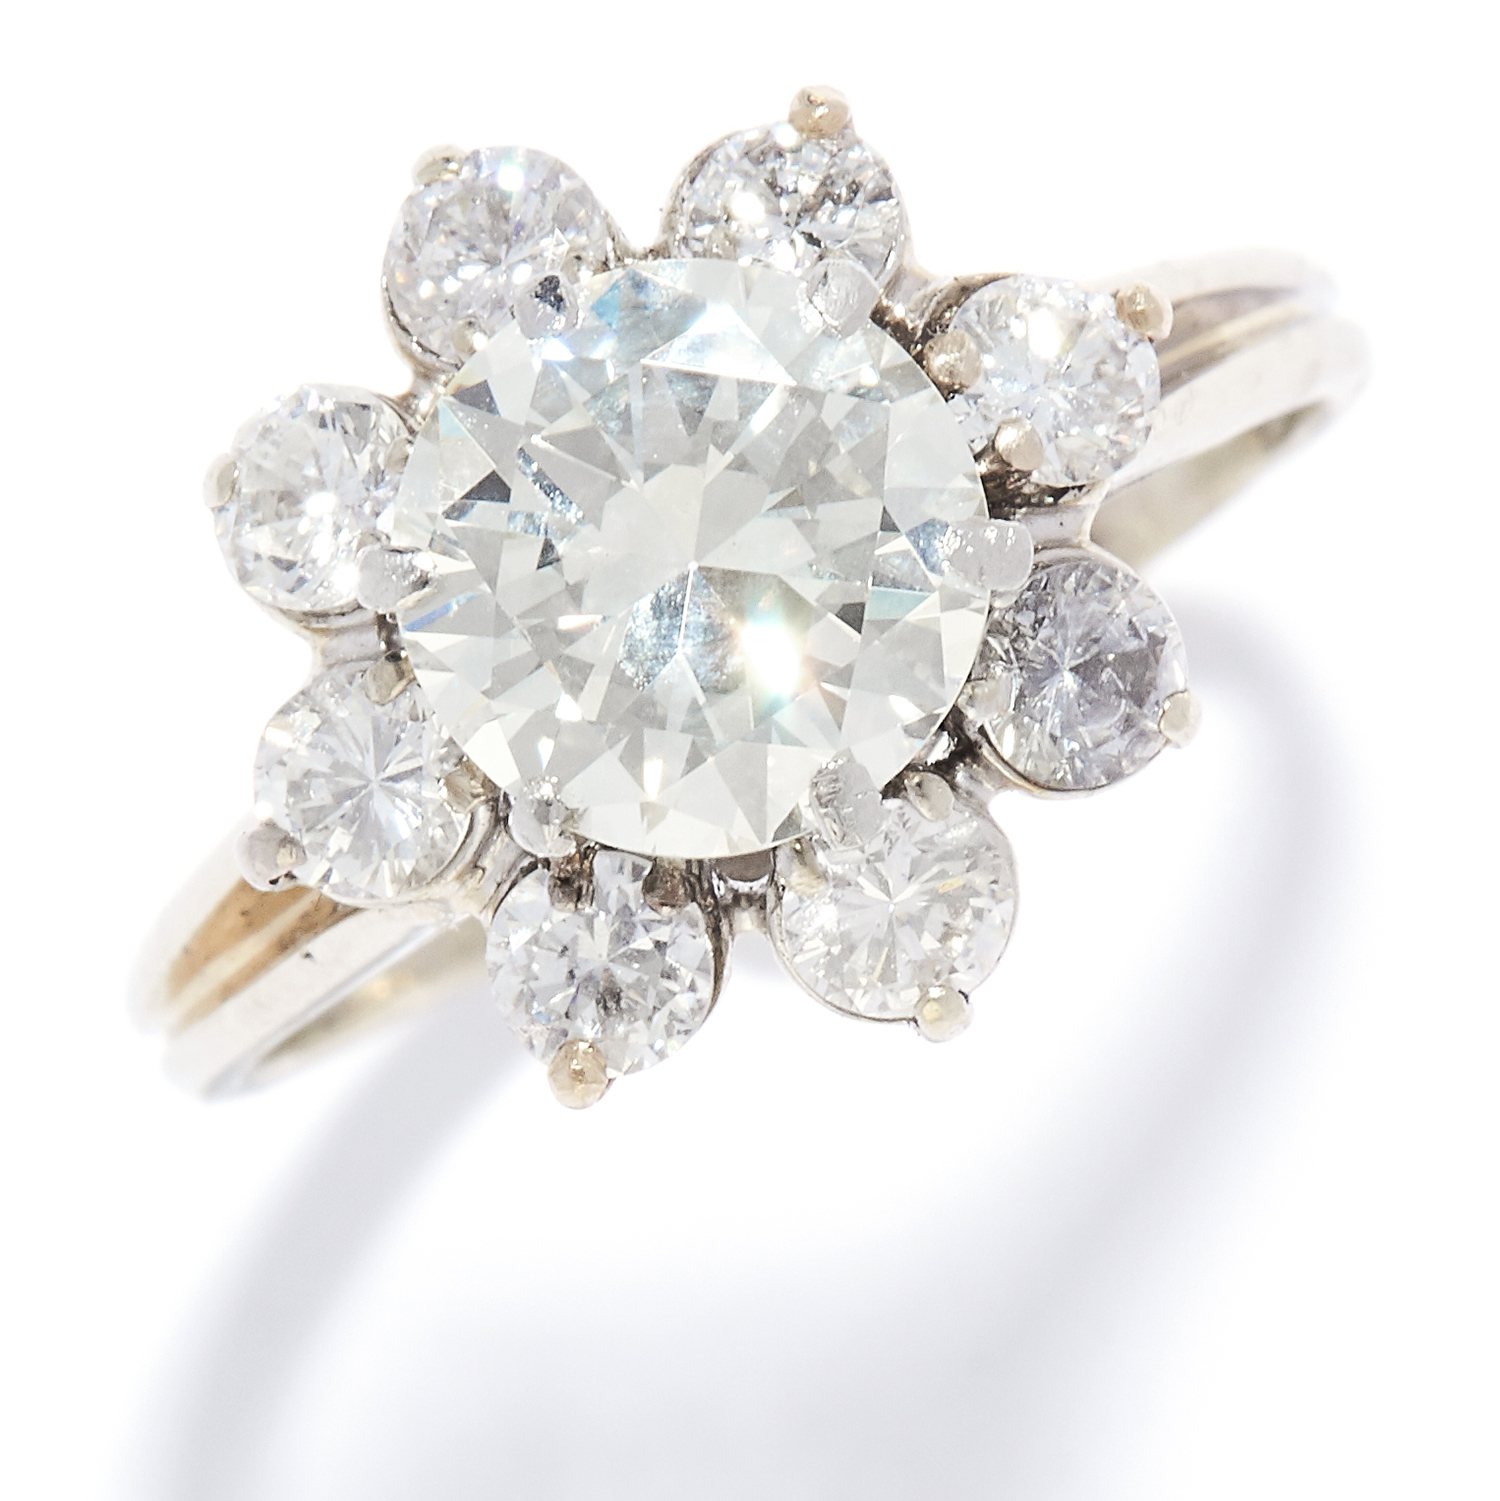 2.31 CARAT DIAMOND CLUSTER RING in platinum or white gold, the central round cut diamond of 1.67